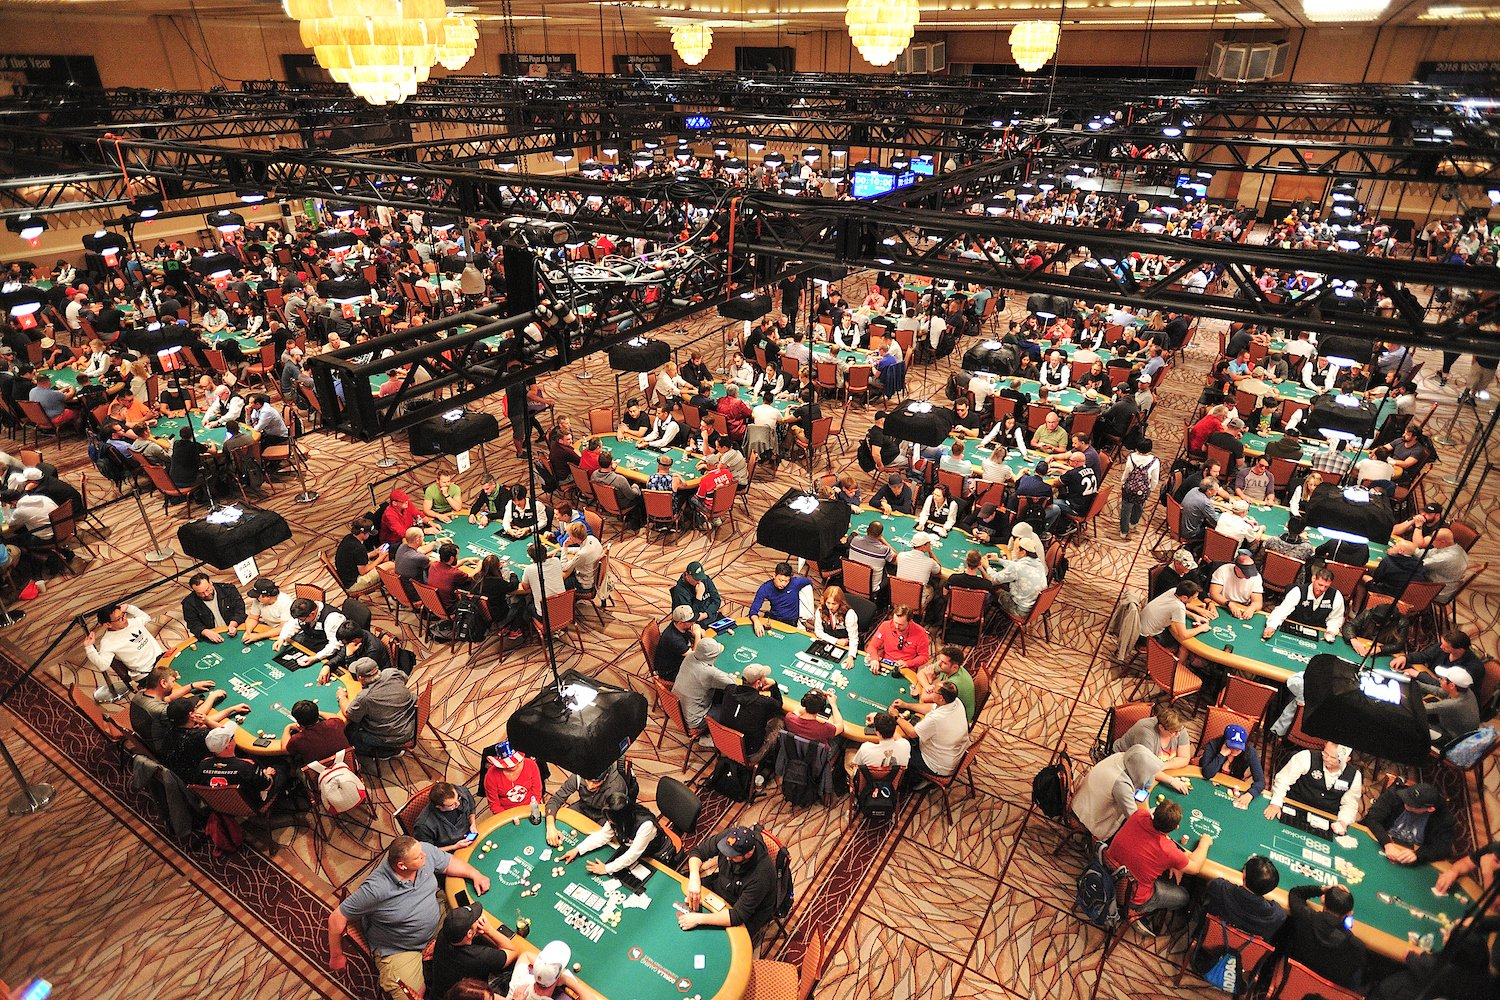 2020 WSOP Schedule: 12 more events confirmed